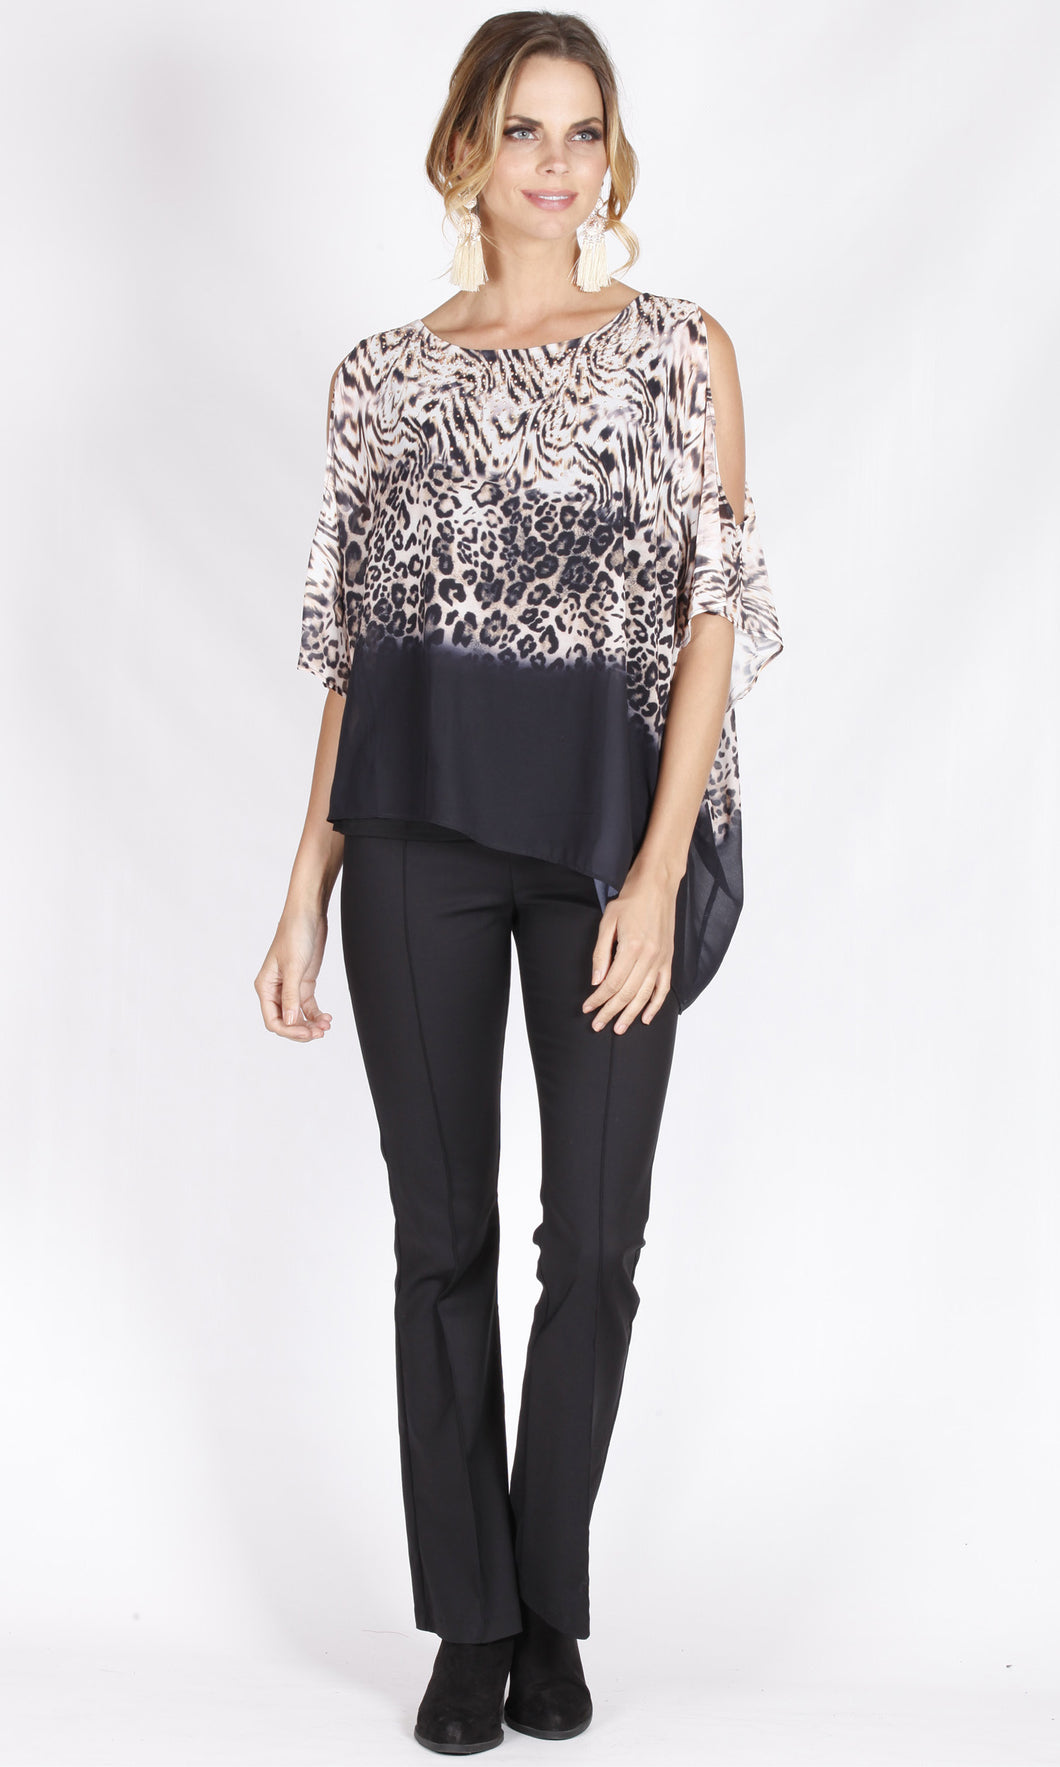 BS1016063-35NC Animal Print Asymmetric Loose Fit Chiffon Top (Pack)